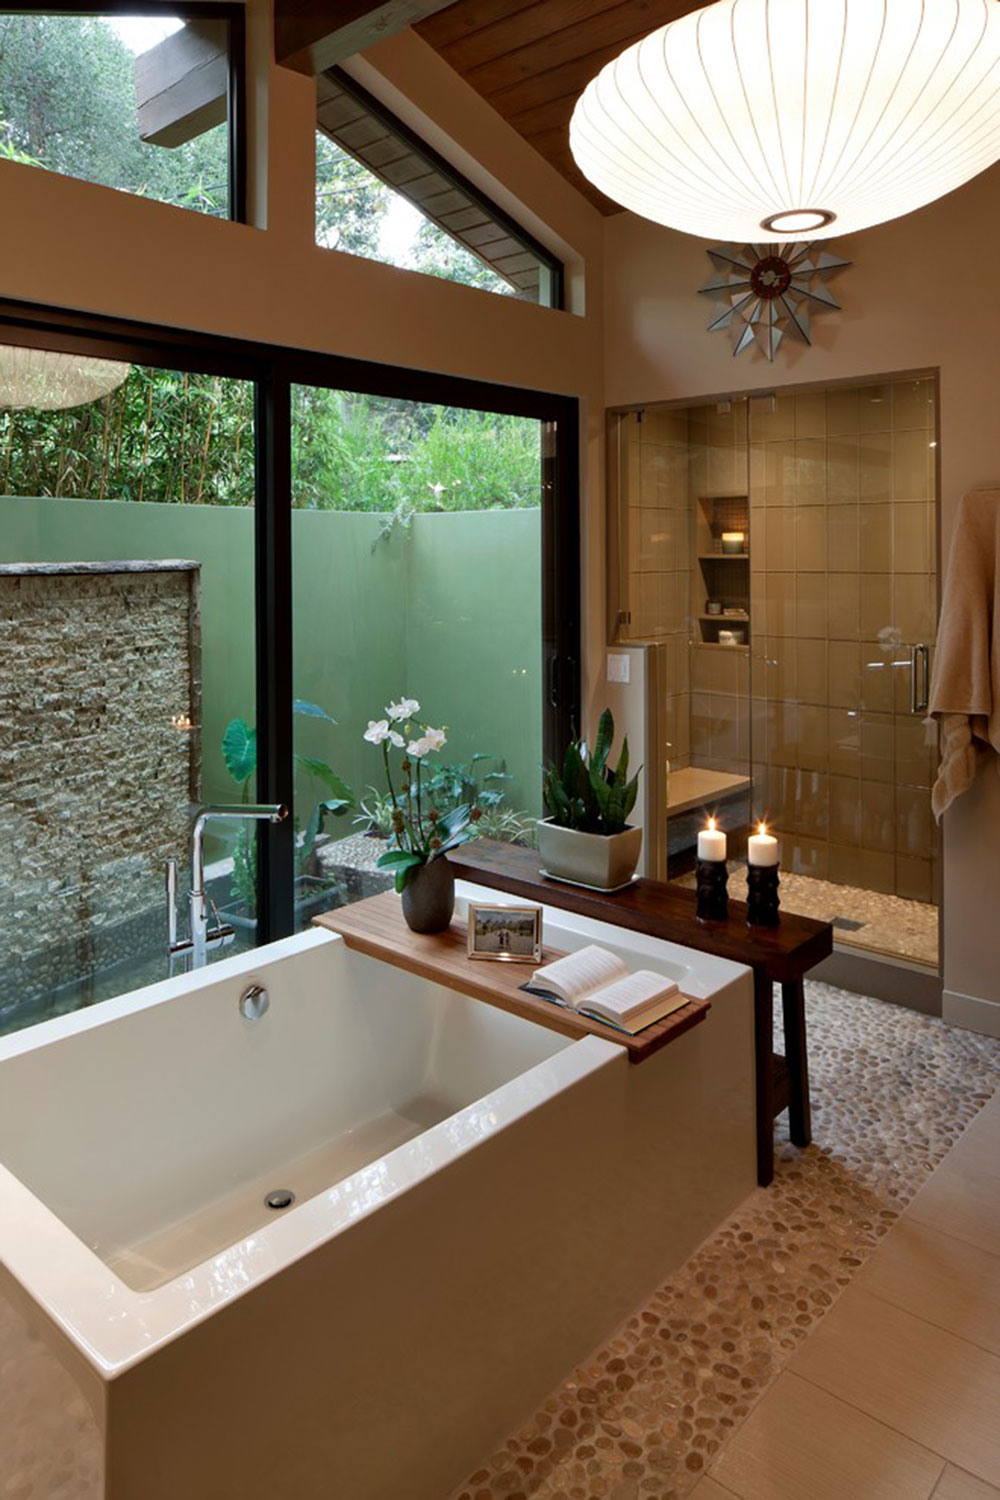 Photos-and-examples-of-choosing-the-best-bathroom-tiles-6 photos and examples of choosing the best bathroom tiles